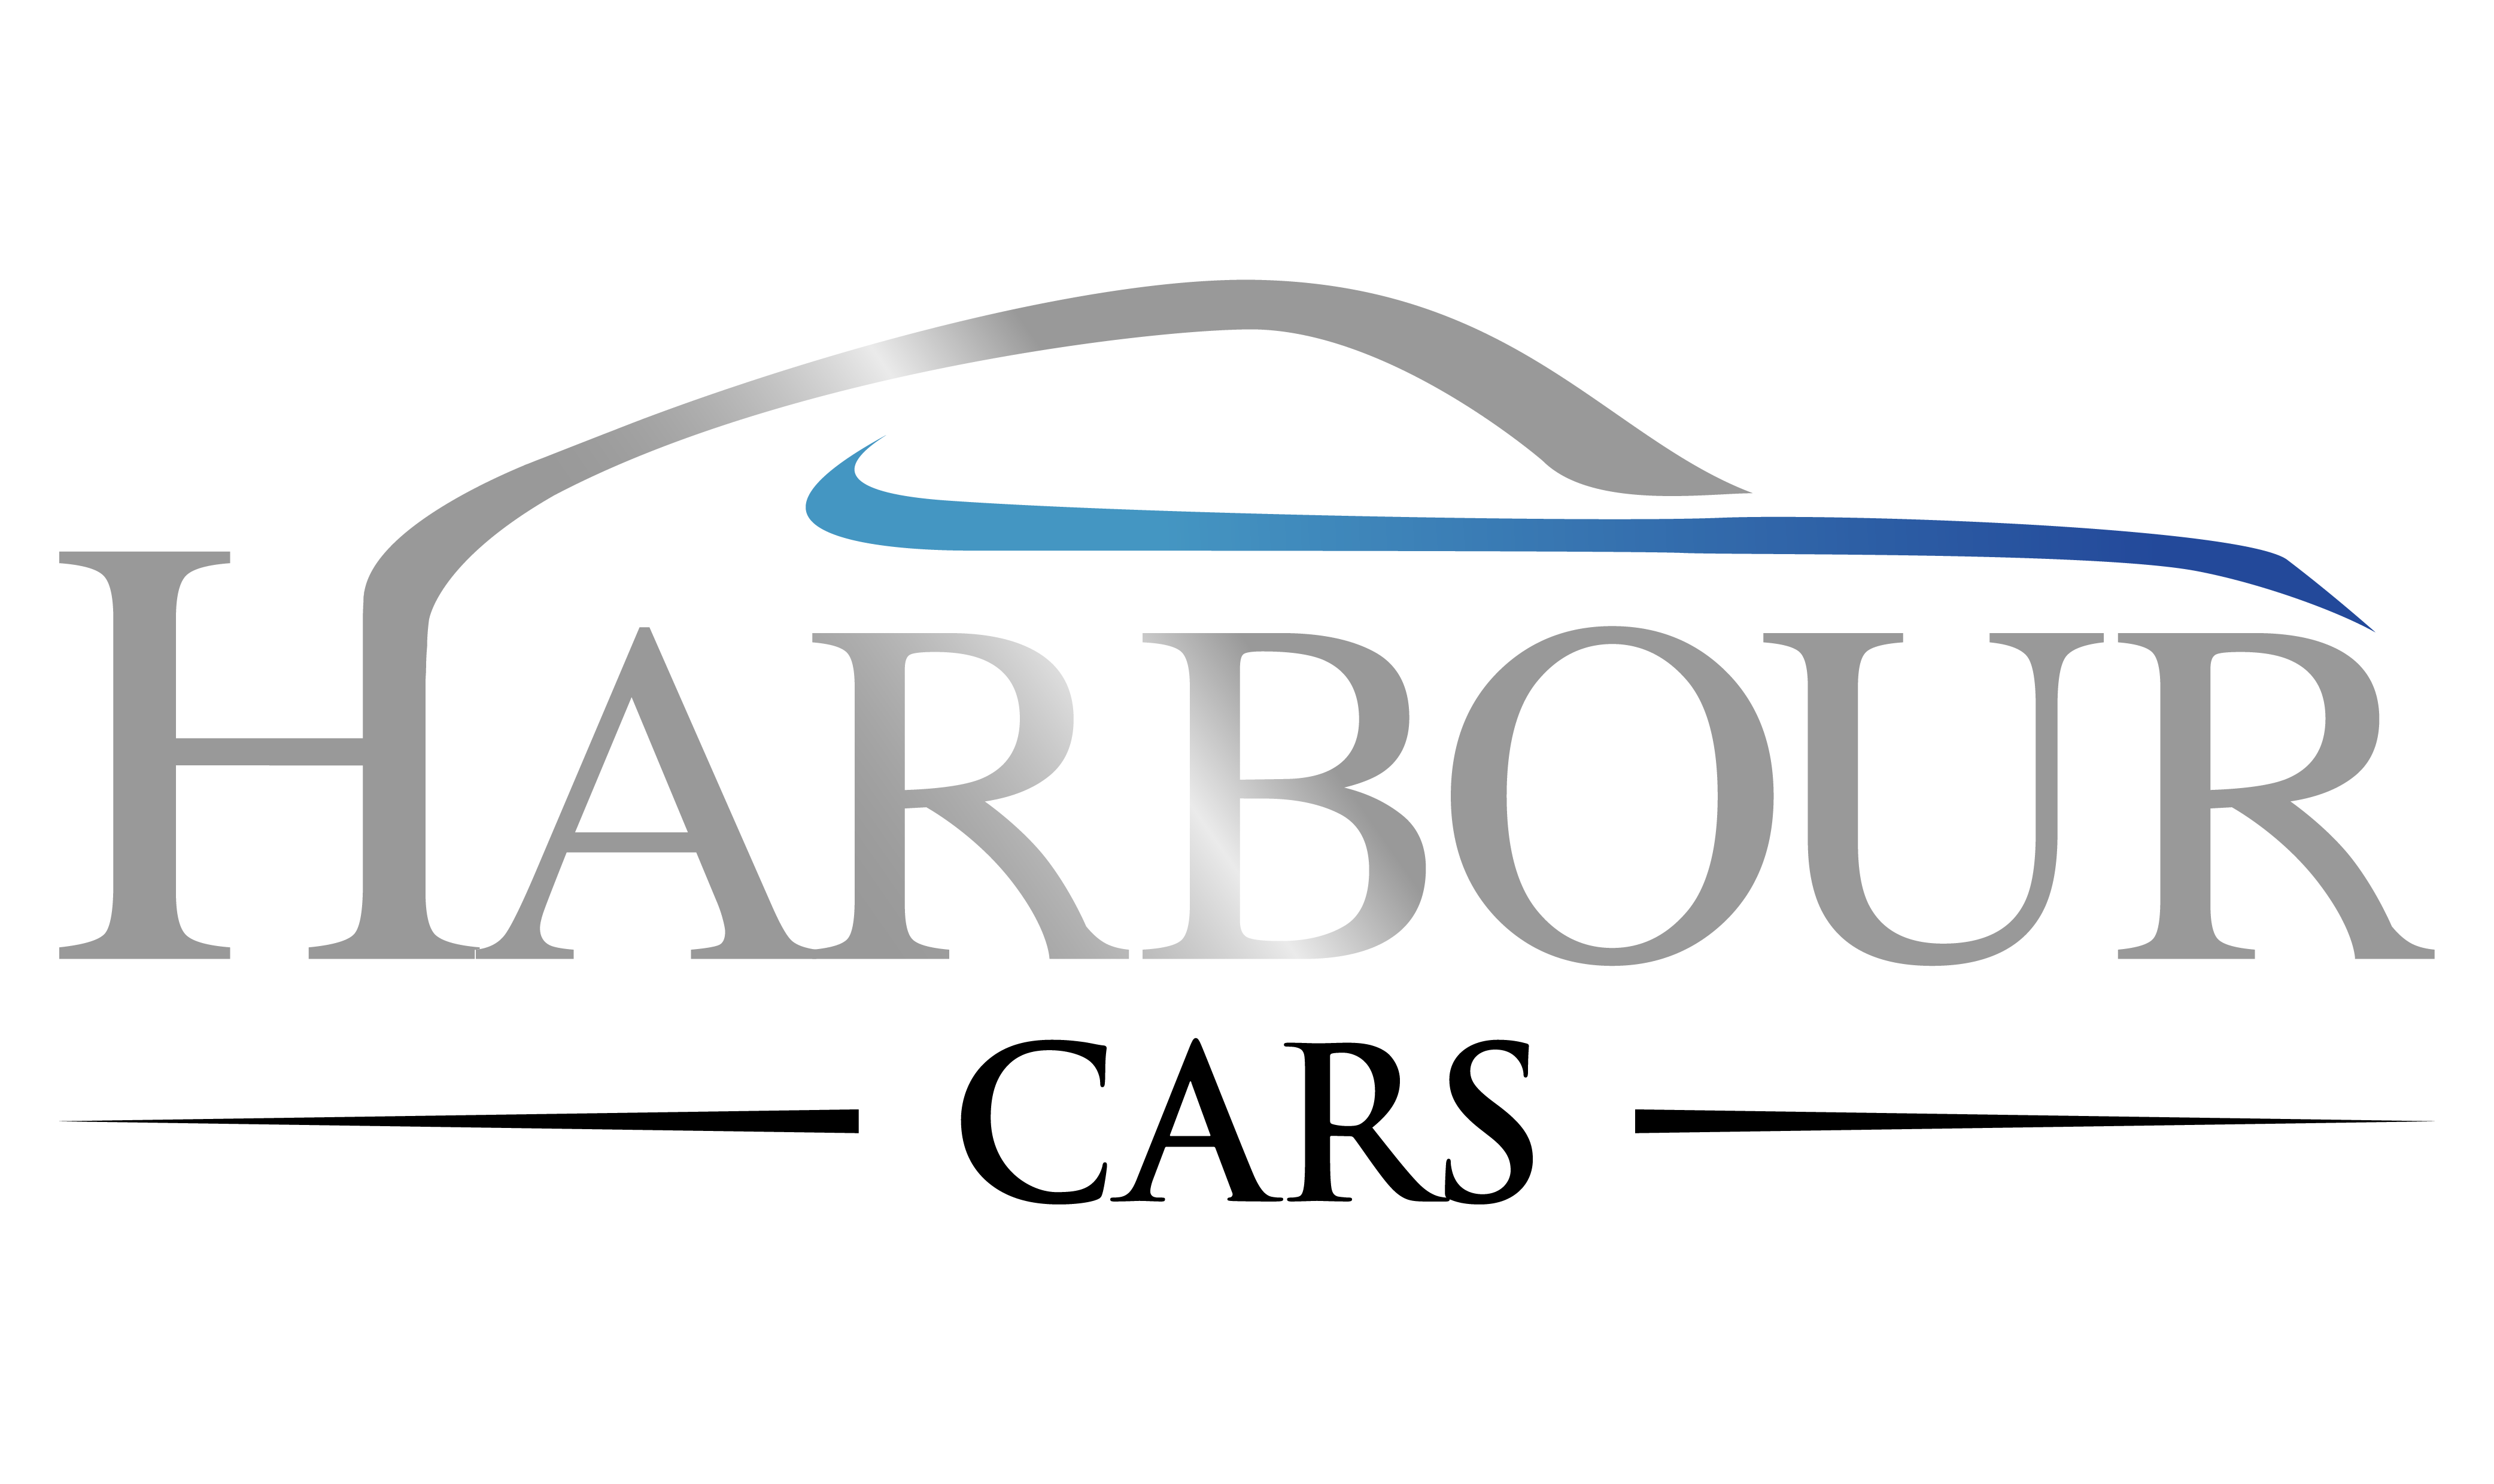 Harbour Cars - Suppliers of the finest used Porsche & Mercedes-Benz need the ultimate logo.